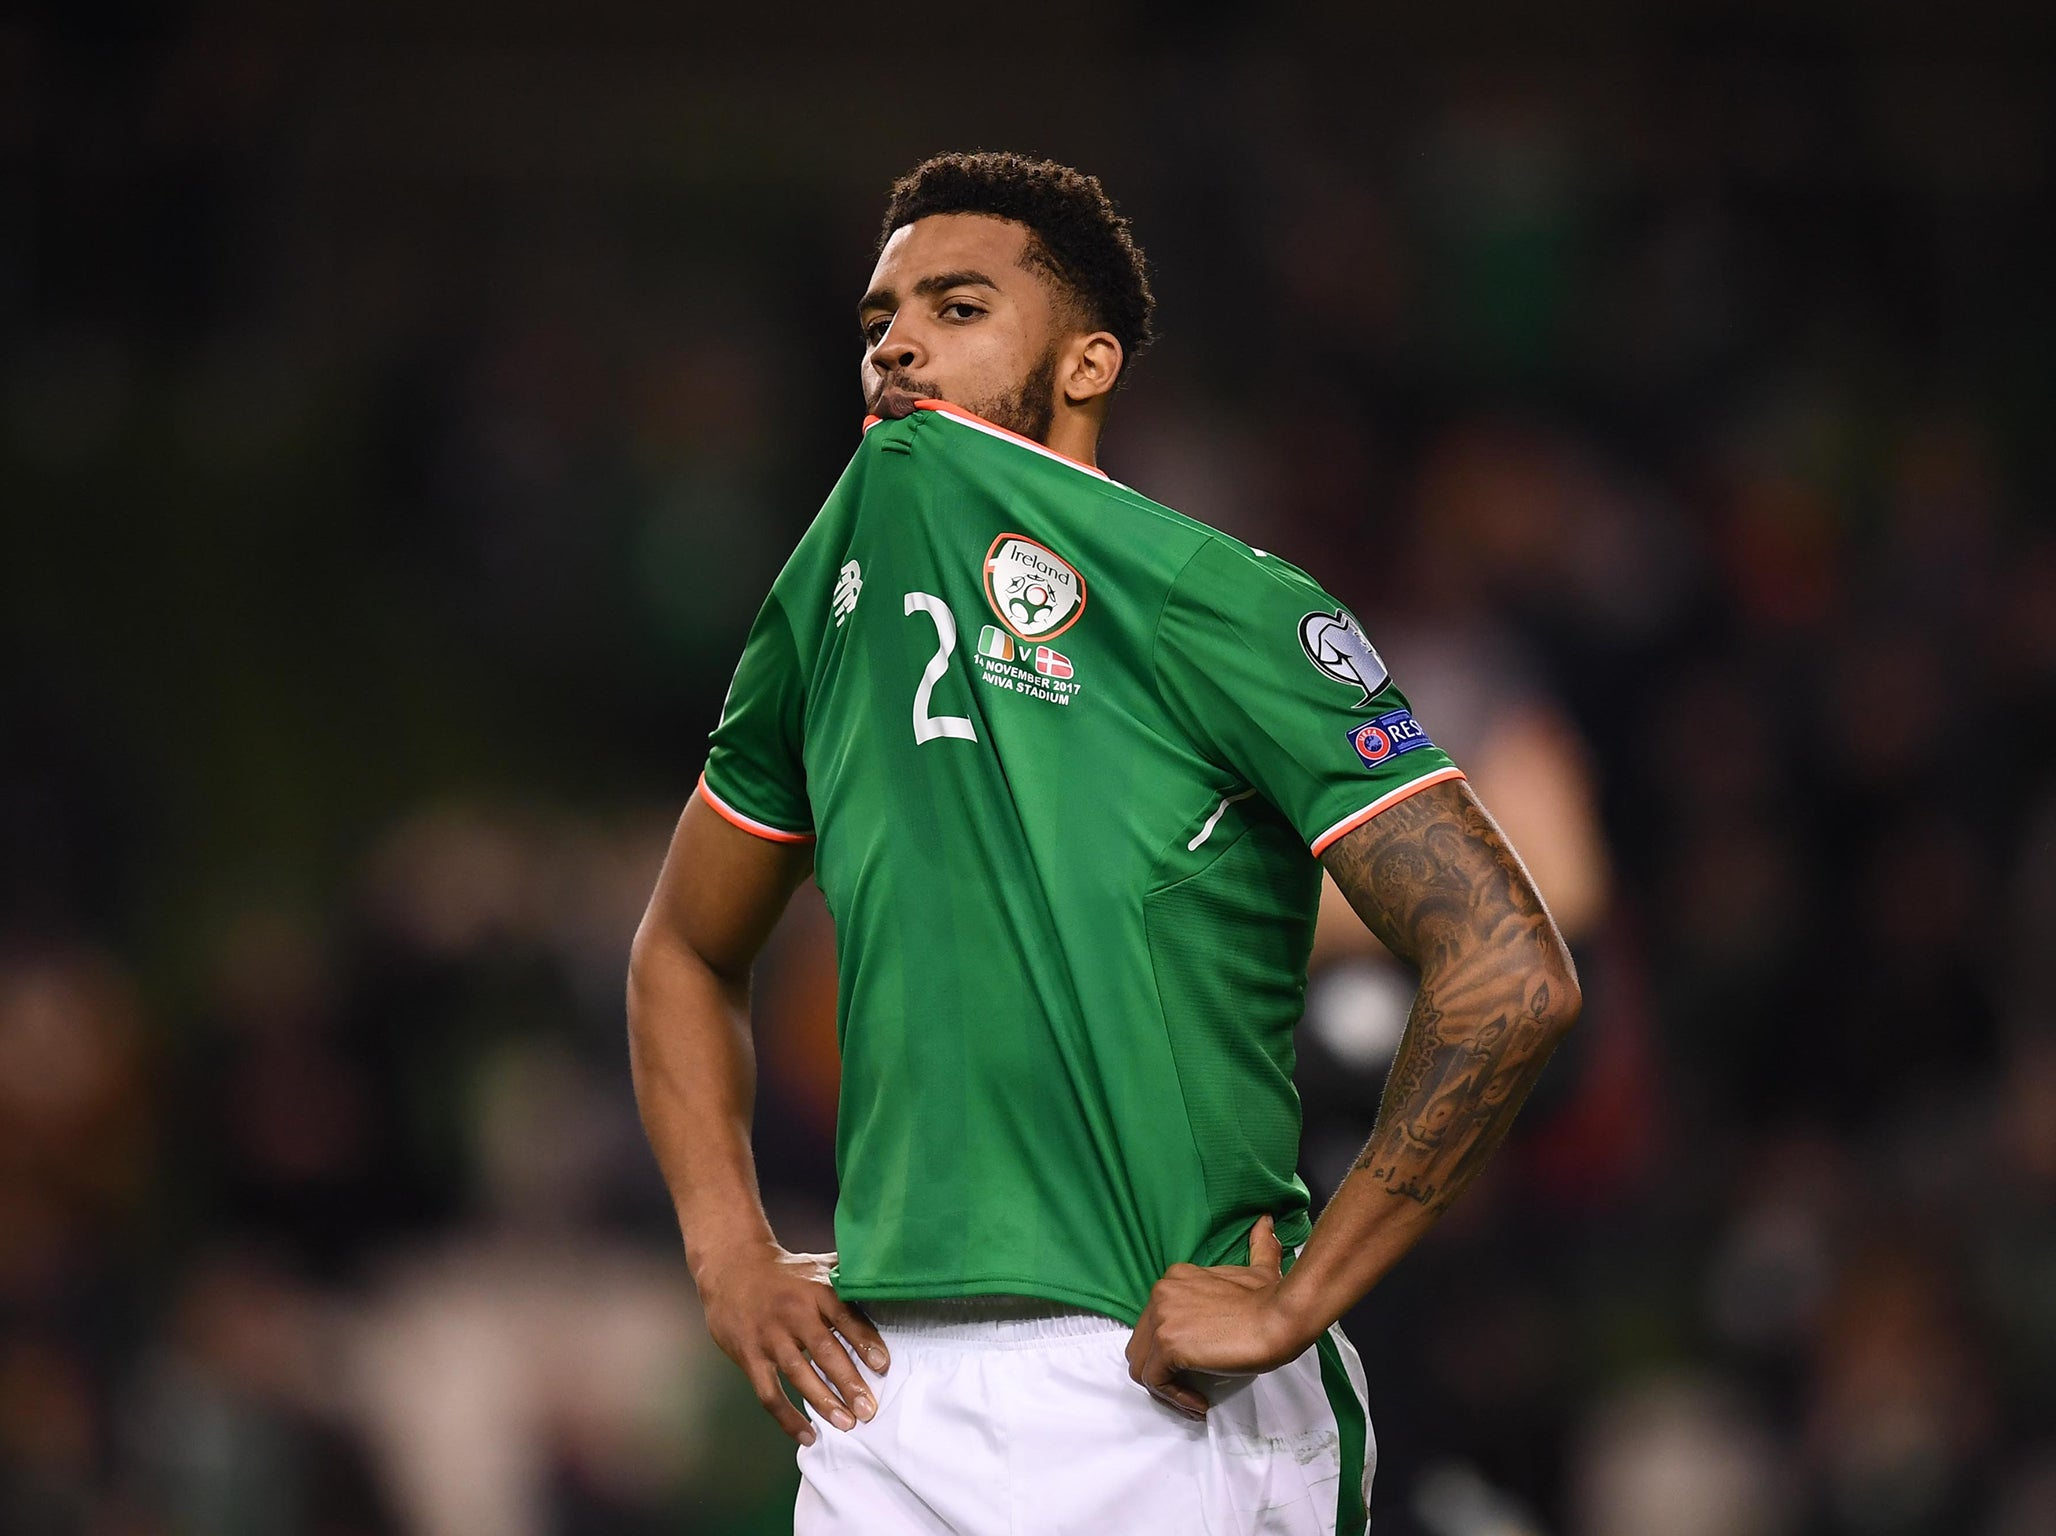 Republic of Ireland defender Cyrus Christie the target of racist abuse after World Cup play-off loss